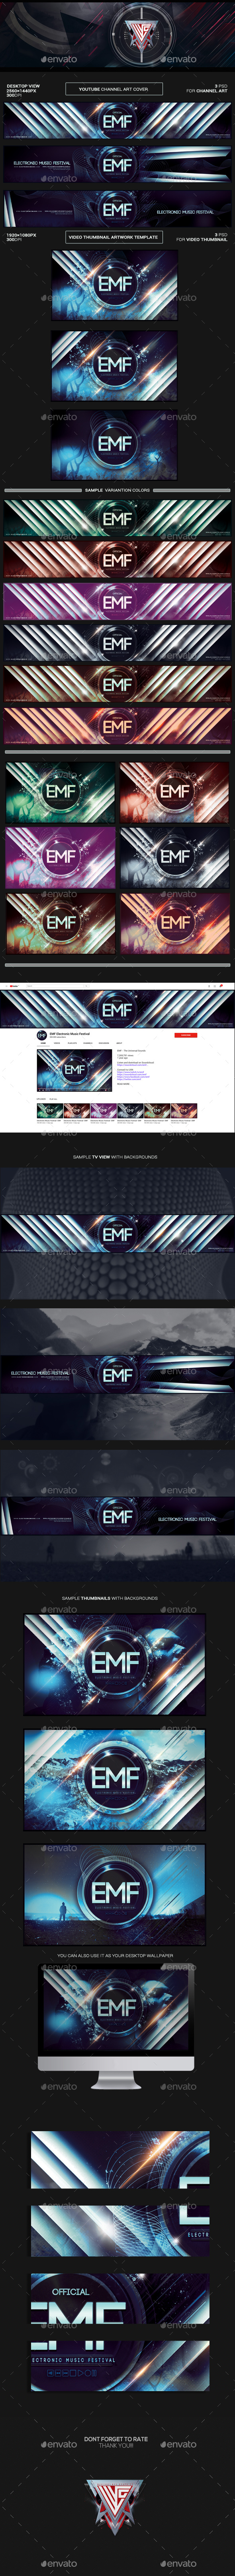 GraphicRiver Youtube Channel Art and Video Thumbnail Template 21126353